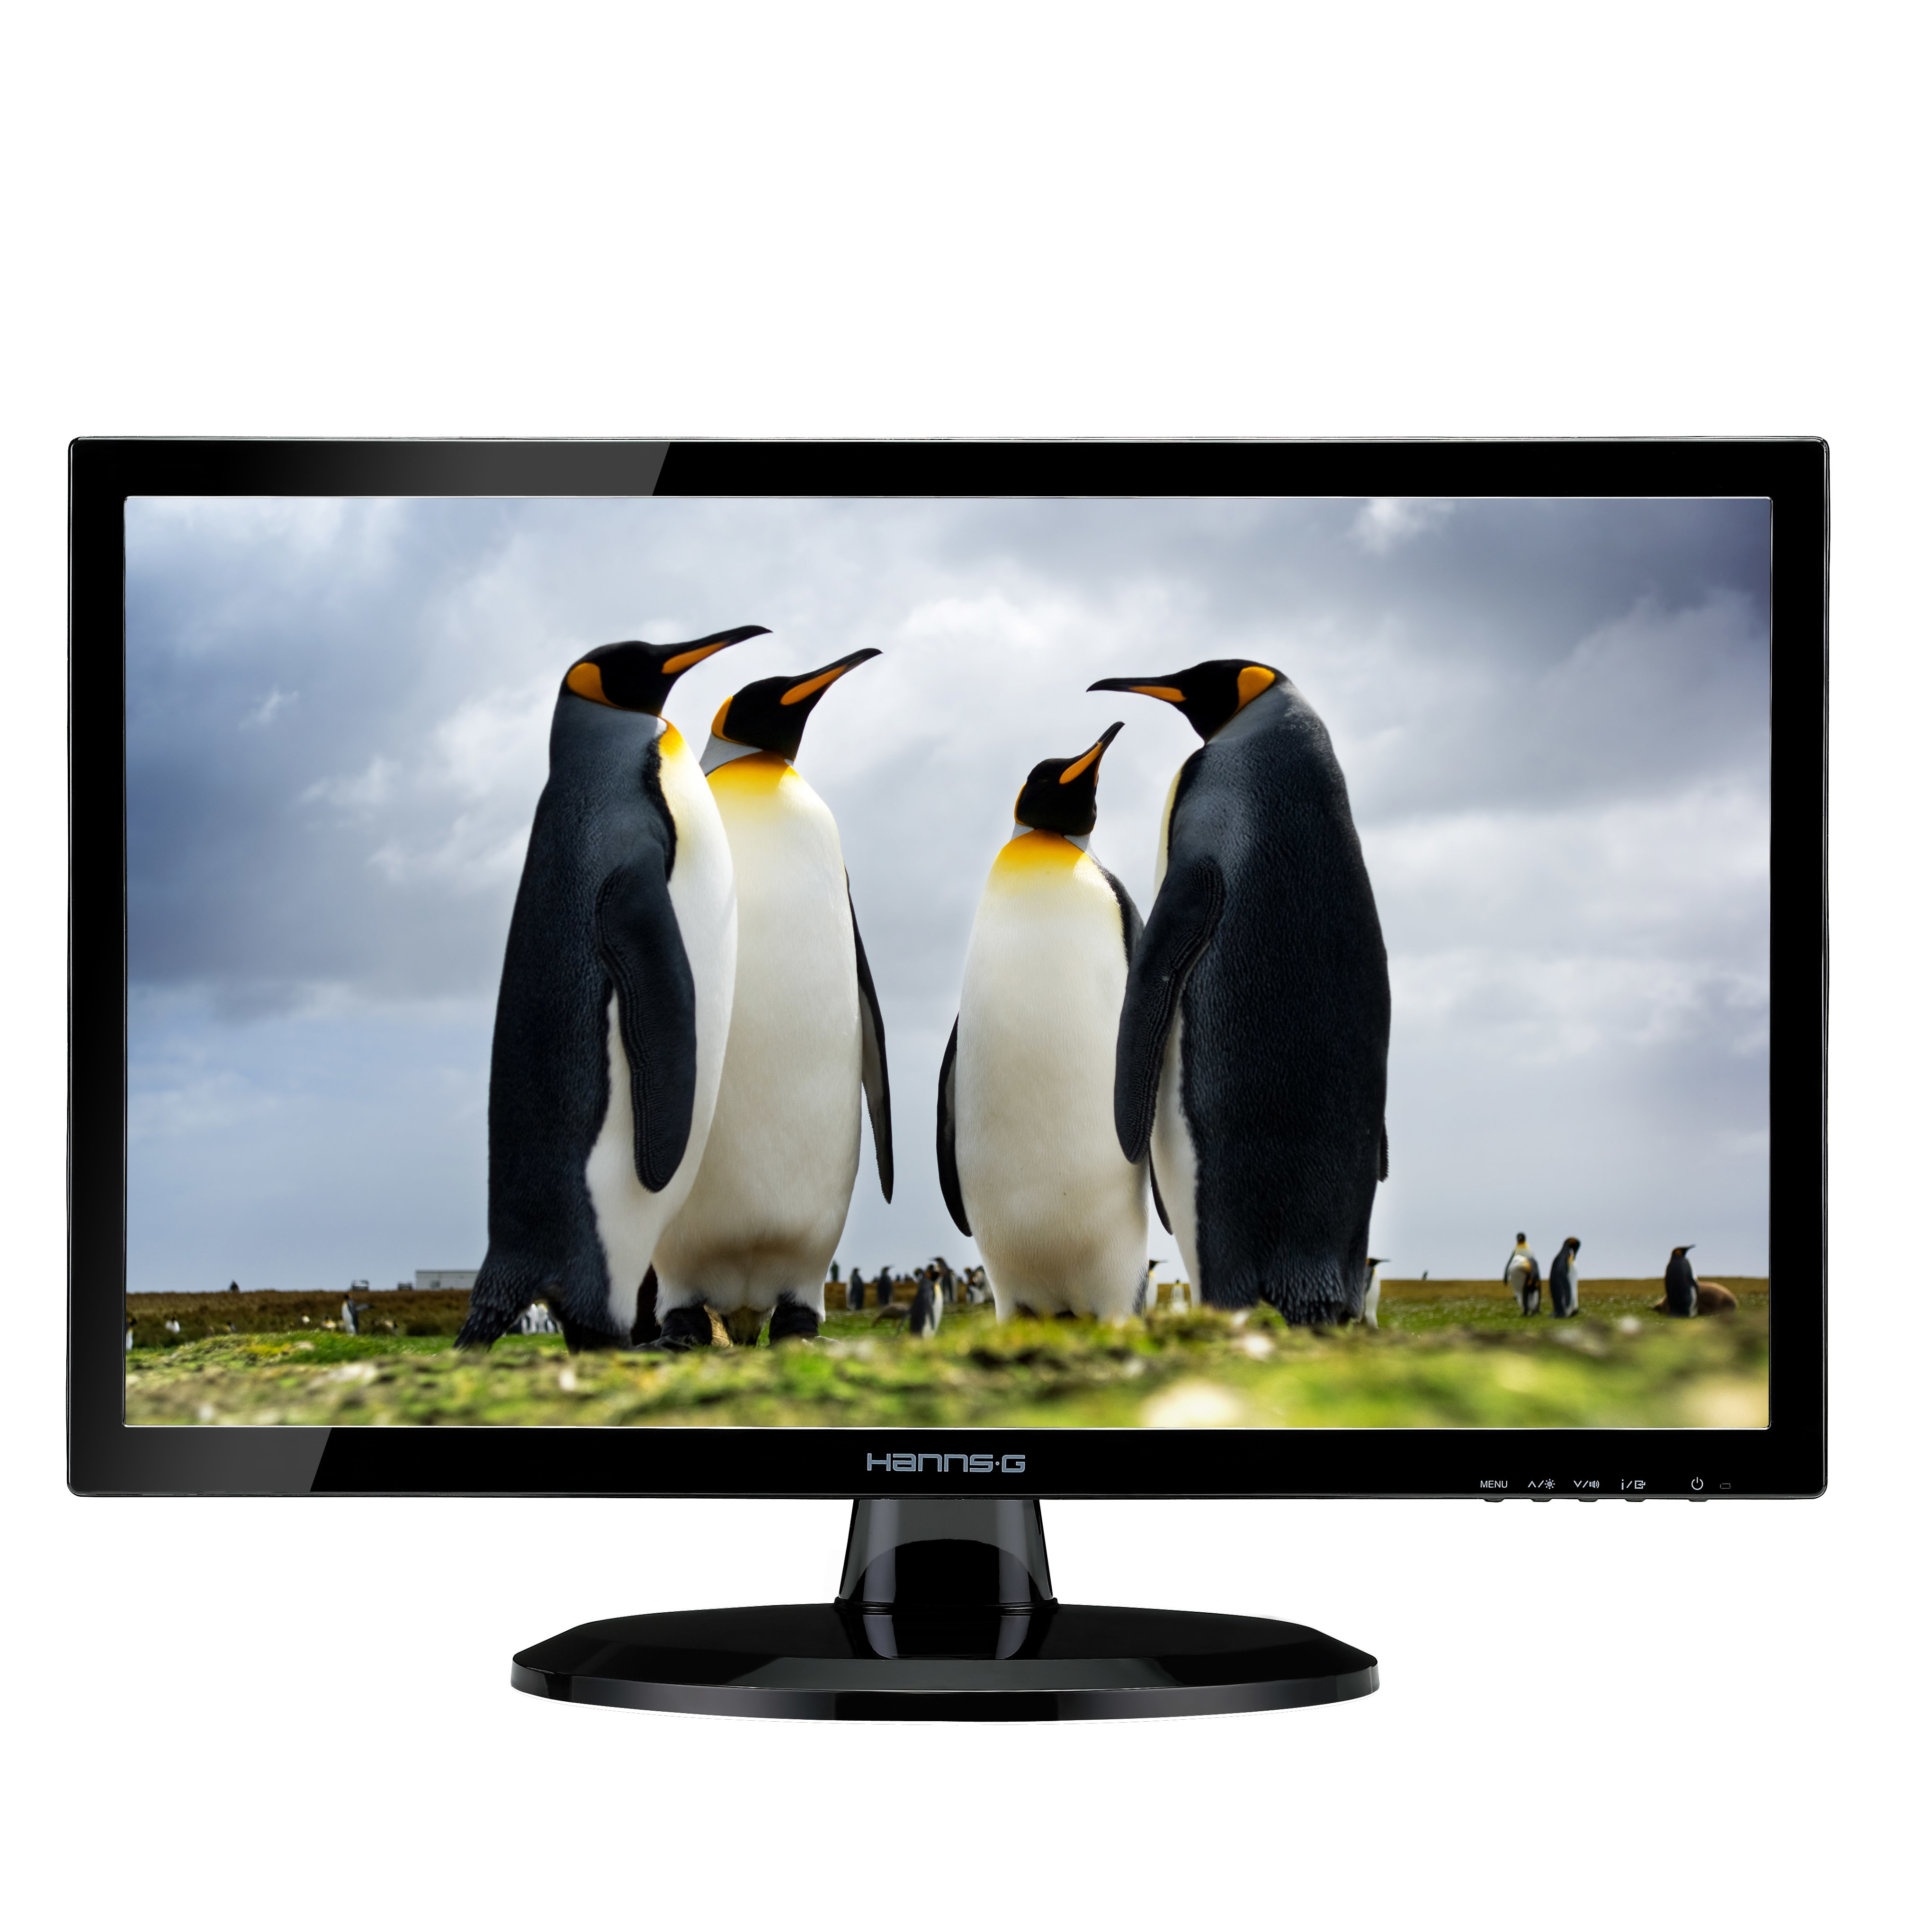 "Hannspree Hanns.G HE247DPB 23.6"" Black Full HD LED display"